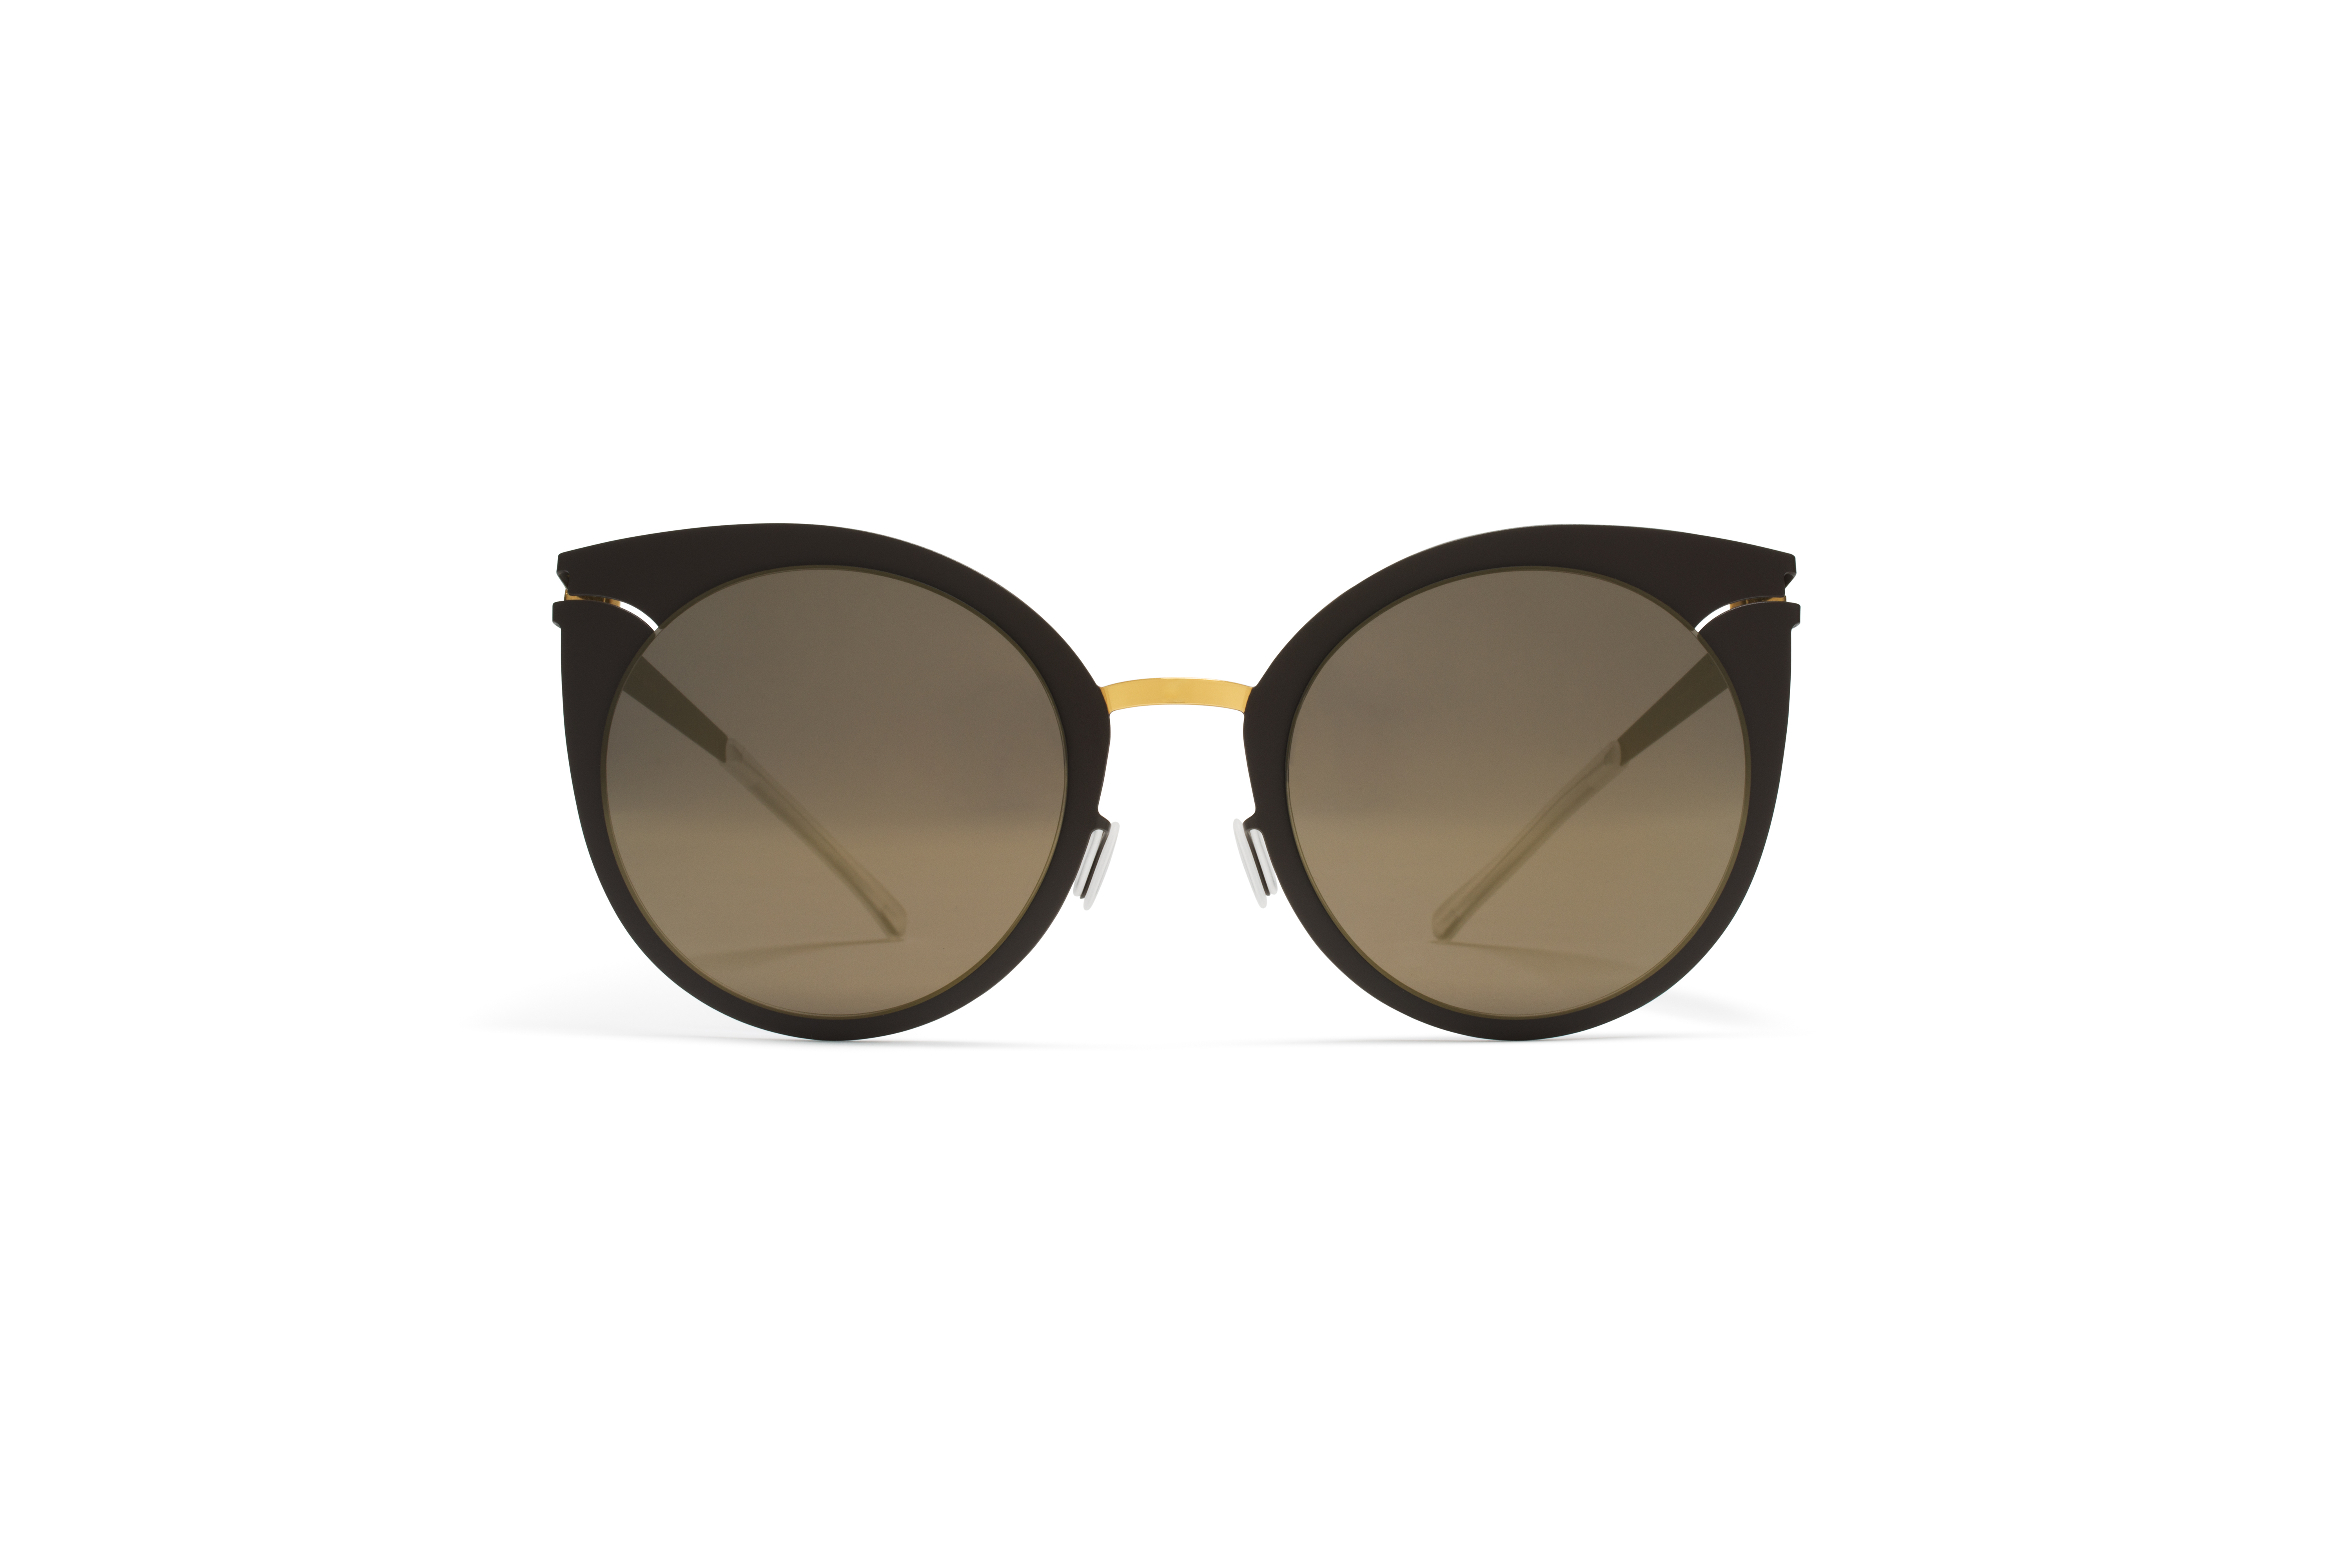 MYKITA Decades Sun Giulietta Gold Terra Brilliantg56bb1d5e0eefa